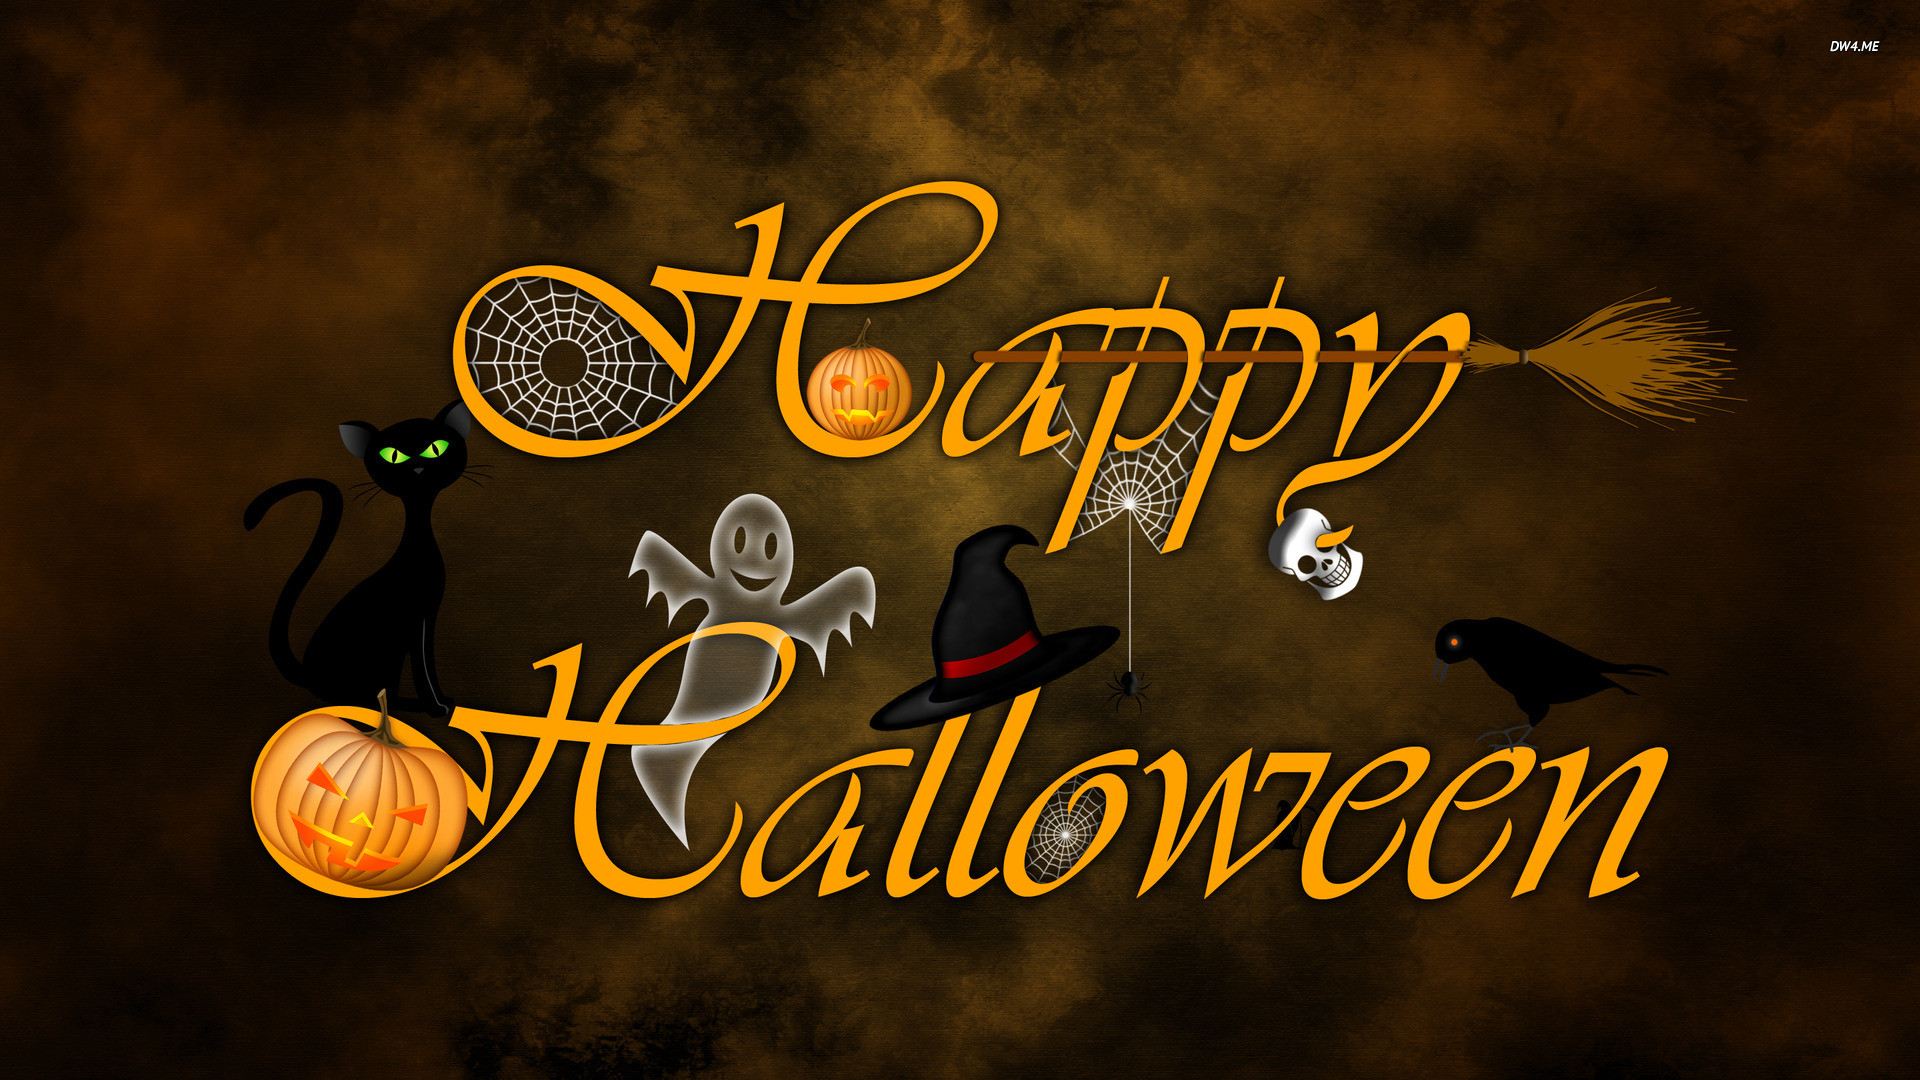 1920x1080 Wallpapers For Disney Halloween Wallpaper Backgrounds